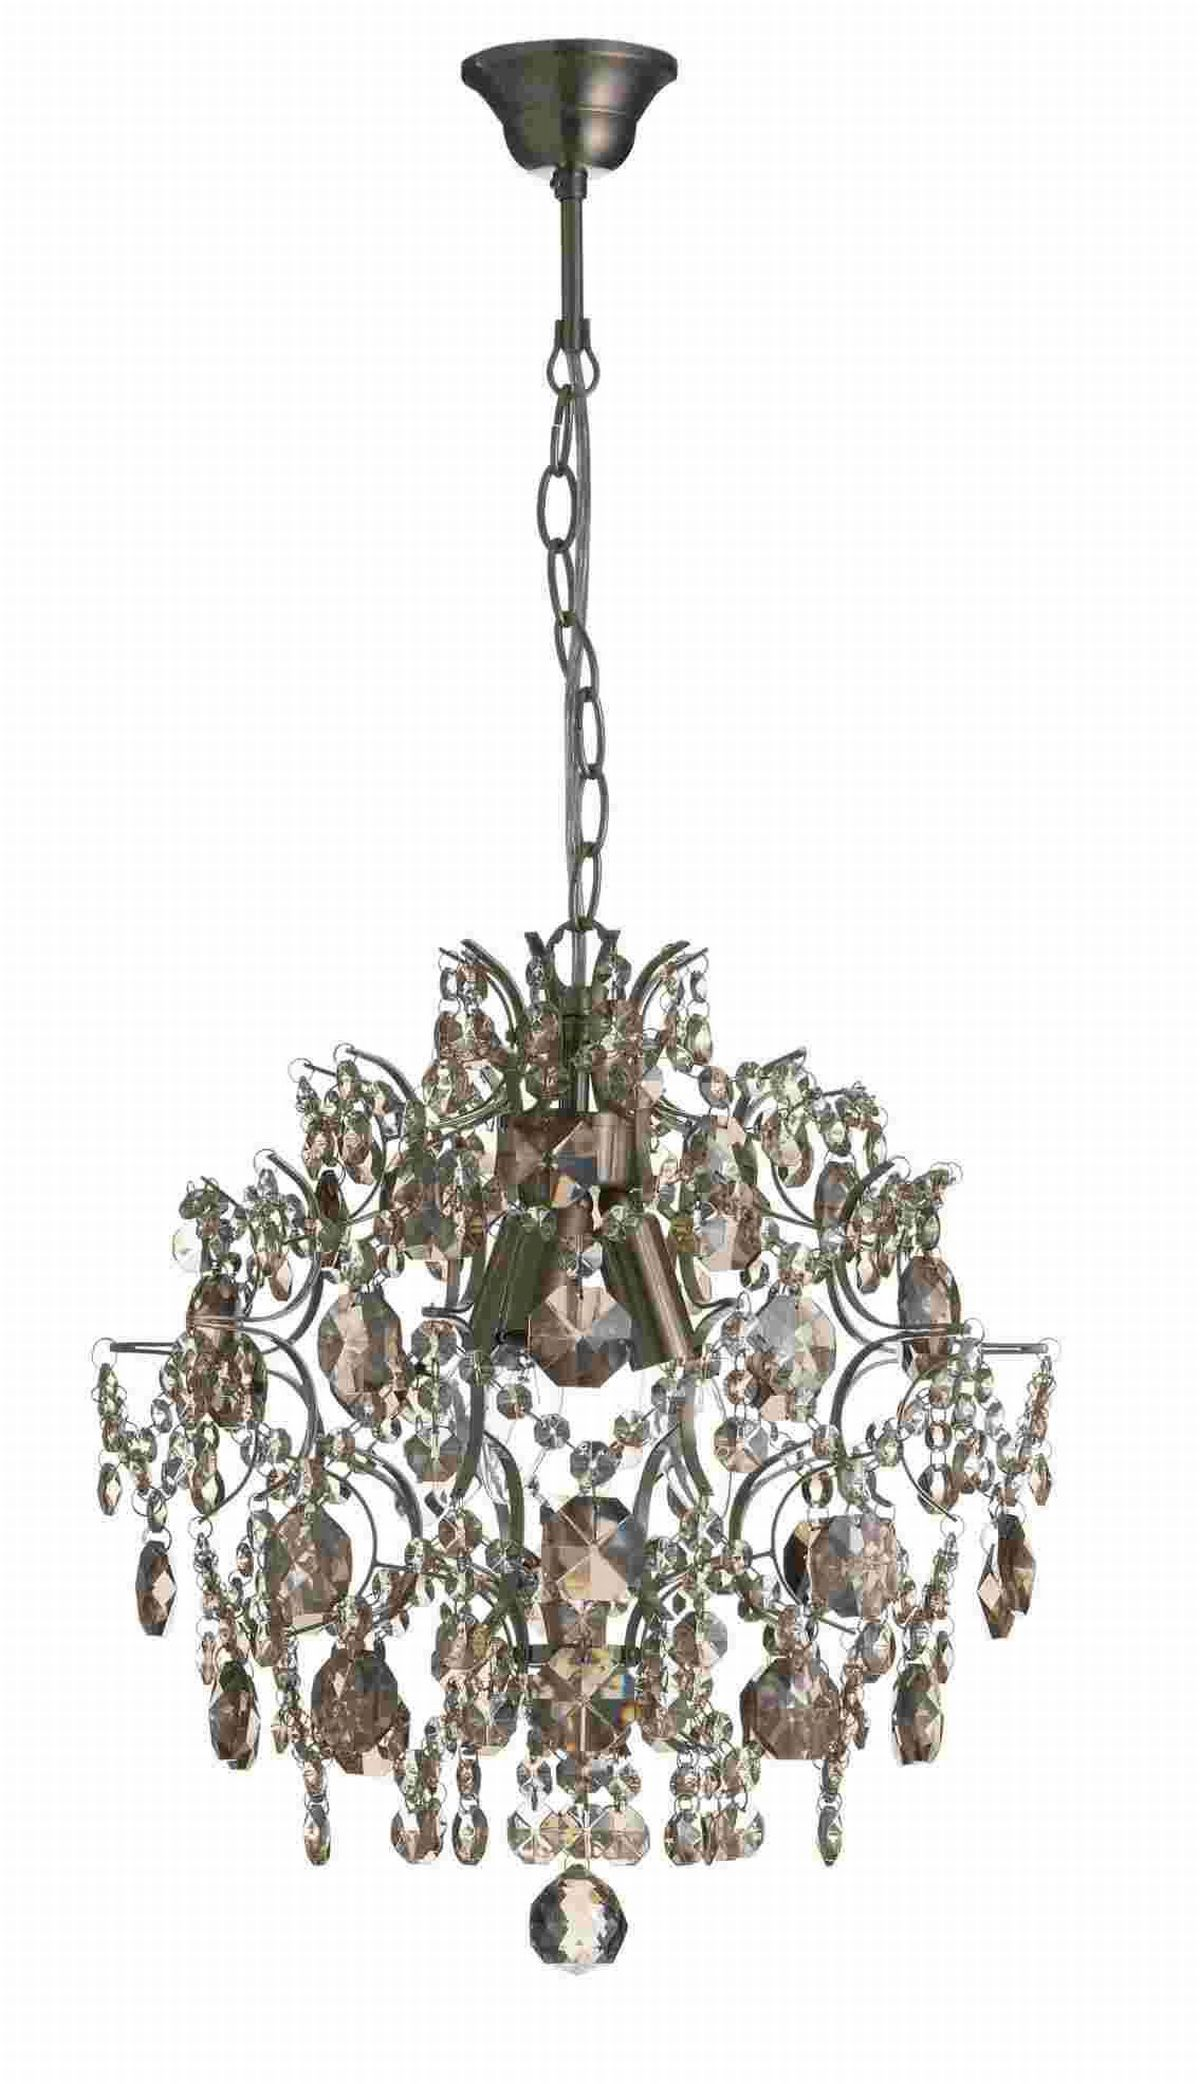 Chandeliers to suit your home chic and contemporary designs for chandeliers to suit your home chic and contemporary designs for every household bournemouth echo aloadofball Images